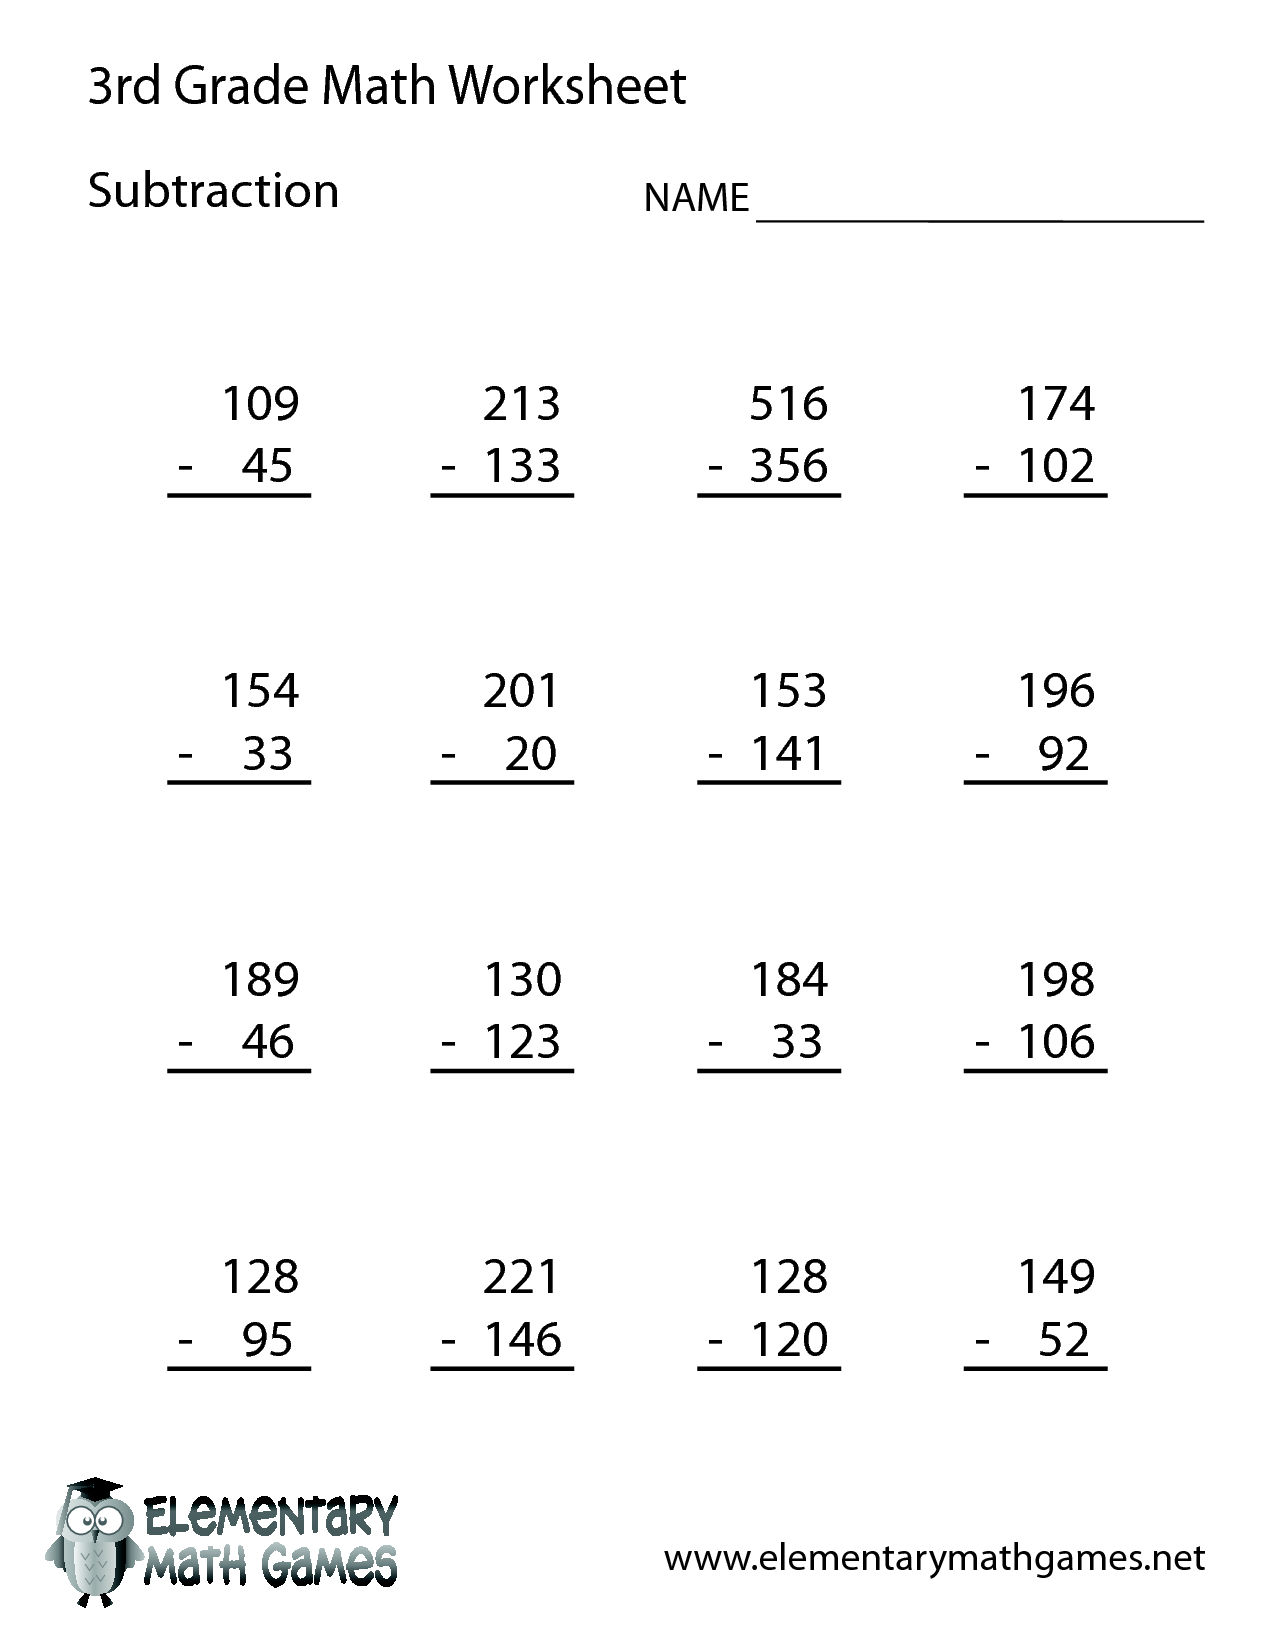 3rd Grade Math Subtraction Printable Worksheets